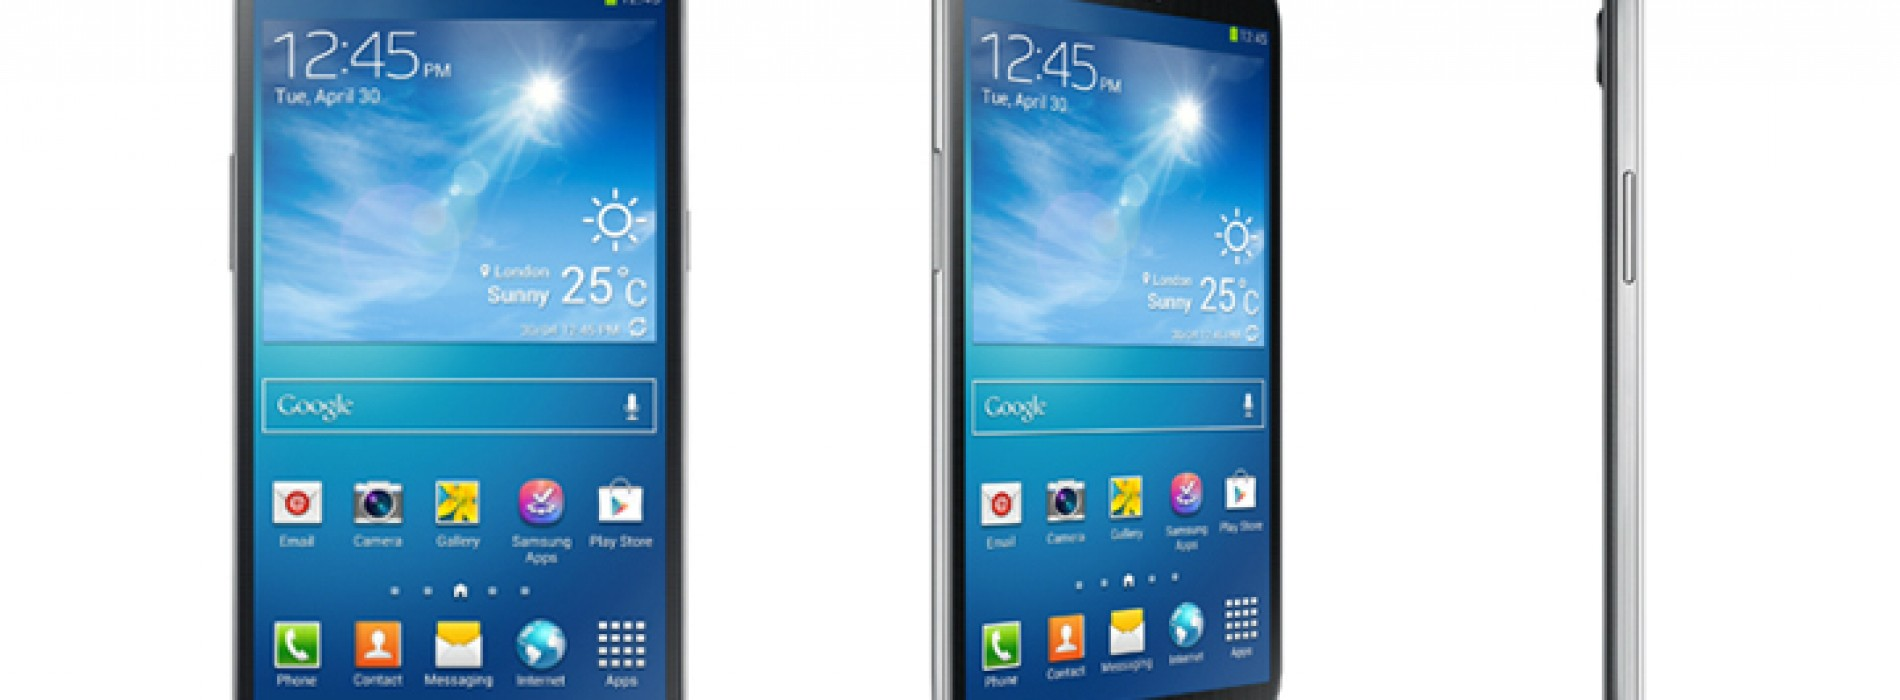 AT&T, Sprint, and U.S. Cellular to carry Samsung Galaxy Mega